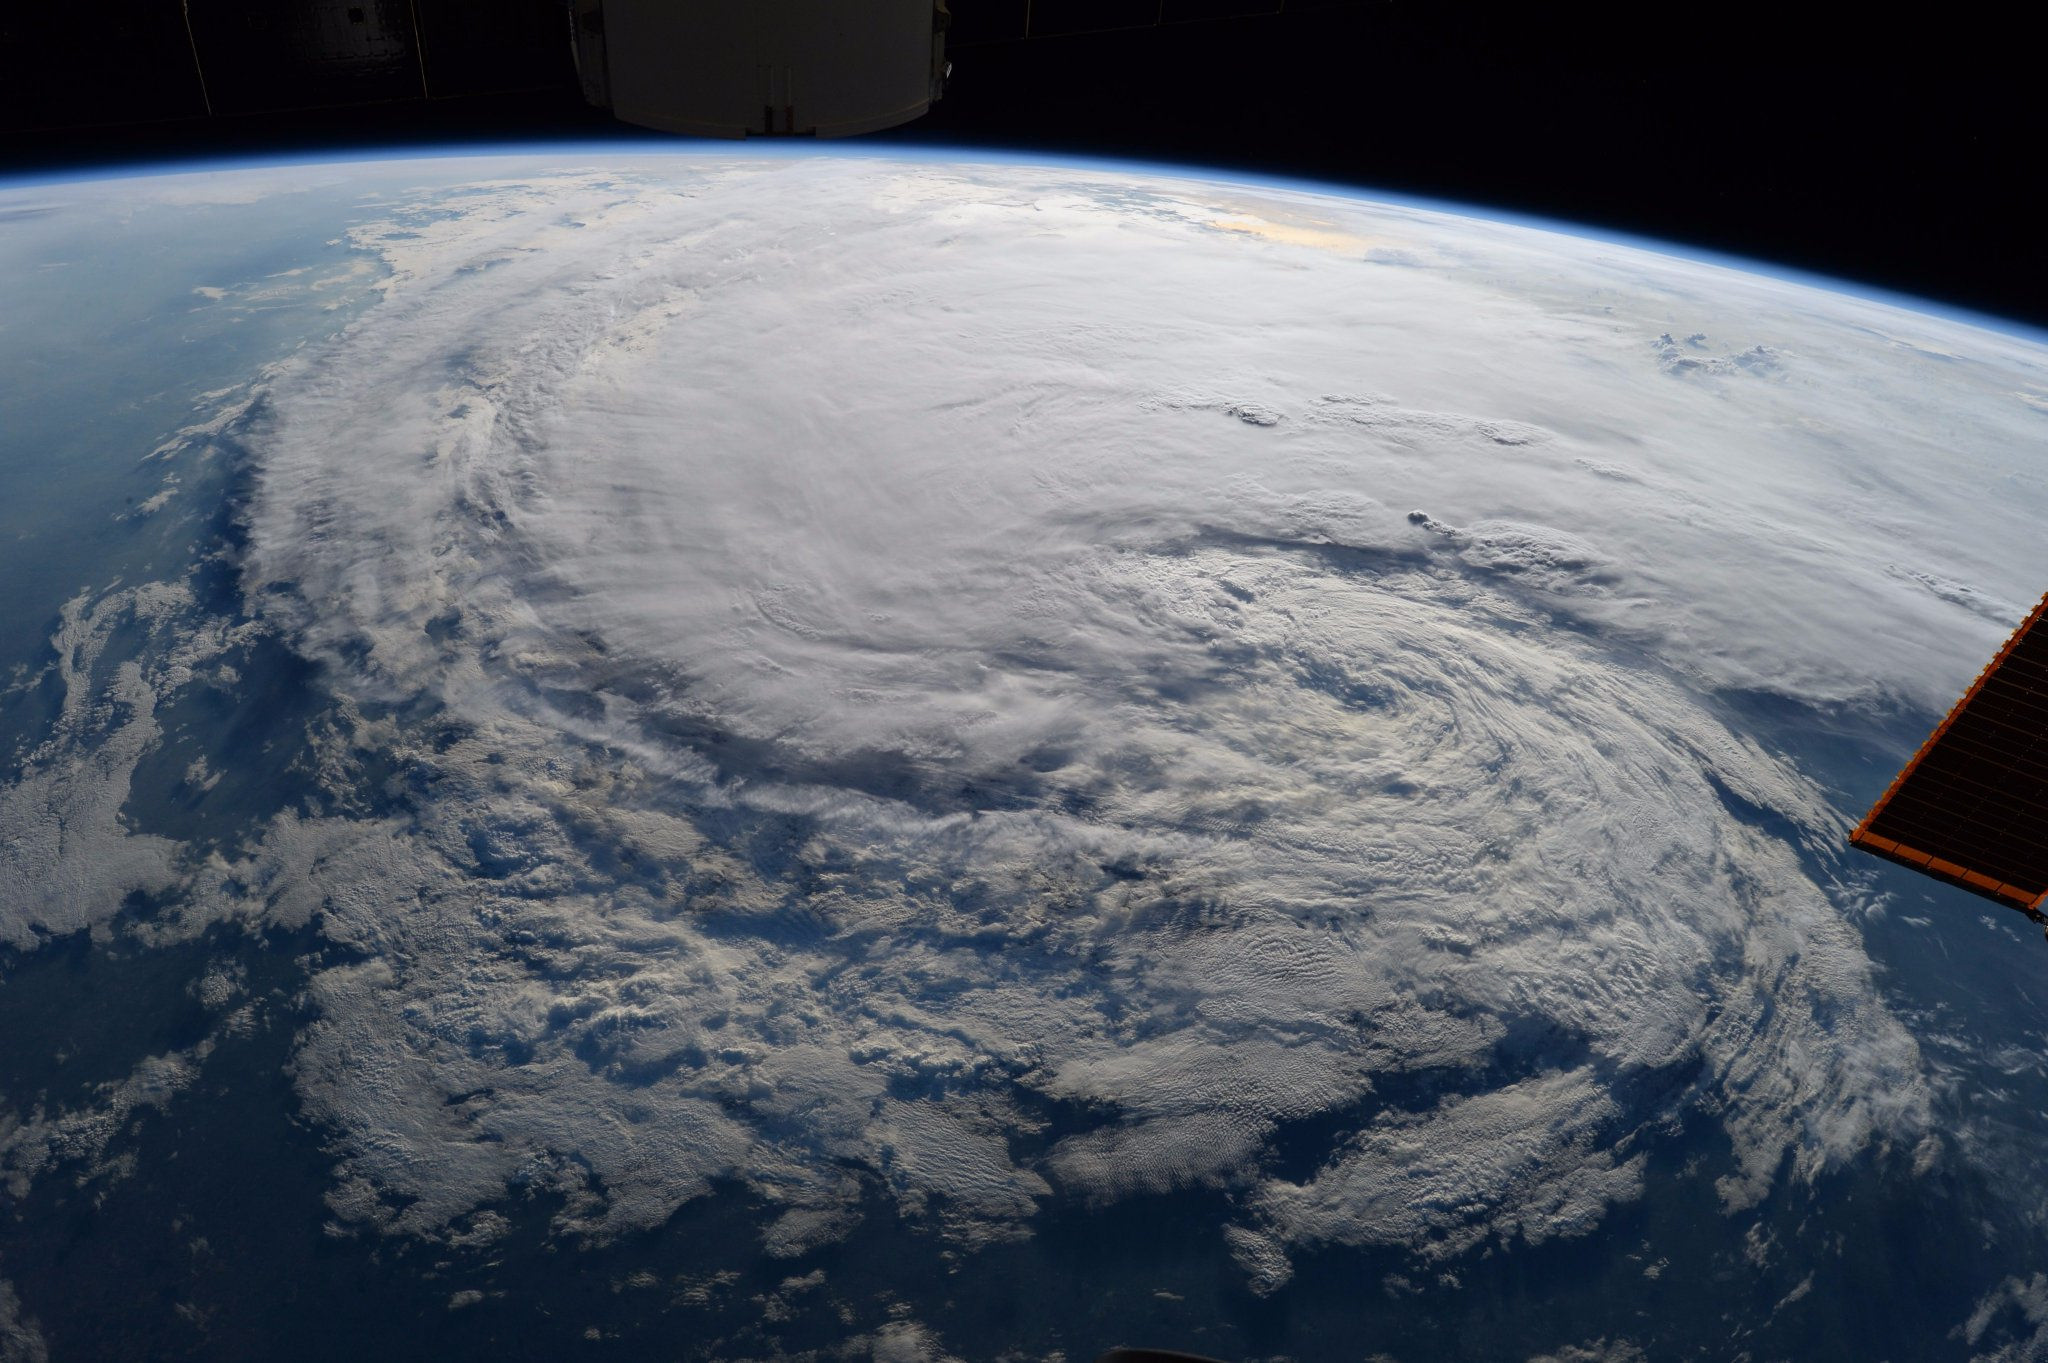 Caption: NASA Watching Harvey from Satellites and the International Space Station, Credit: NASA Goddard Space Flight Center/ Flickr